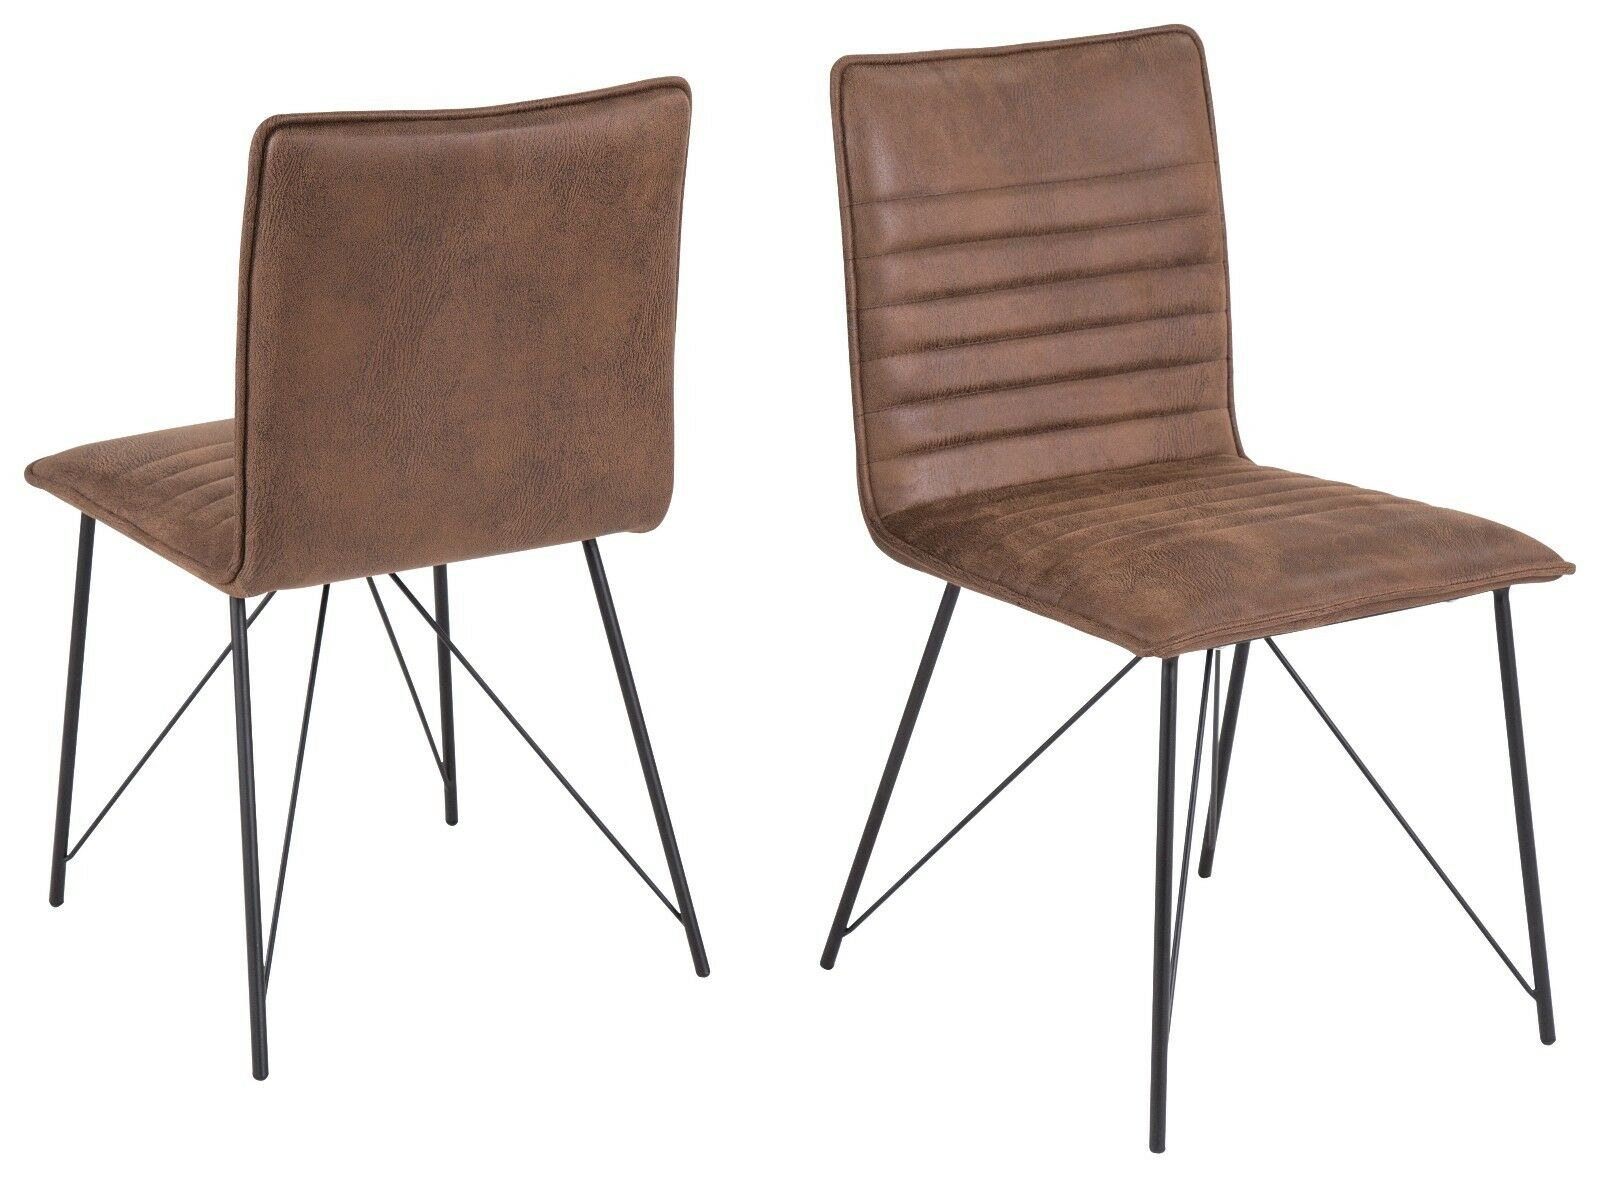 Stuhle modern awesome set of mid century modern dining chairs s s danish chair sthle er with - Stuhle retro design ...